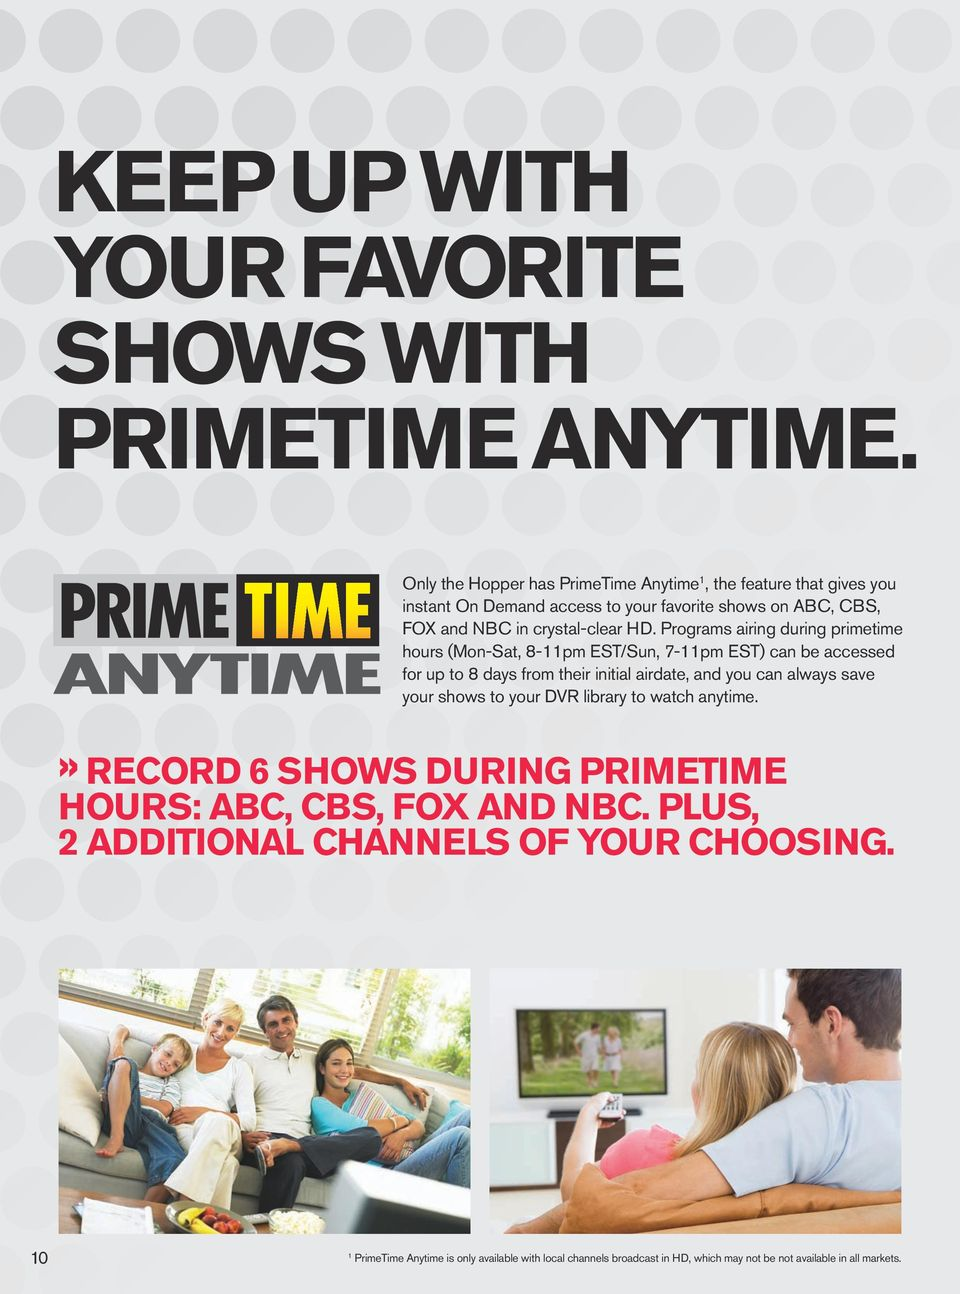 Programs airing during primetime hours (Mon-Sat, 8-11pm EST/Sun, 7-11pm EST) can be accessed for up to 8 days from their initial airdate, and you can always save